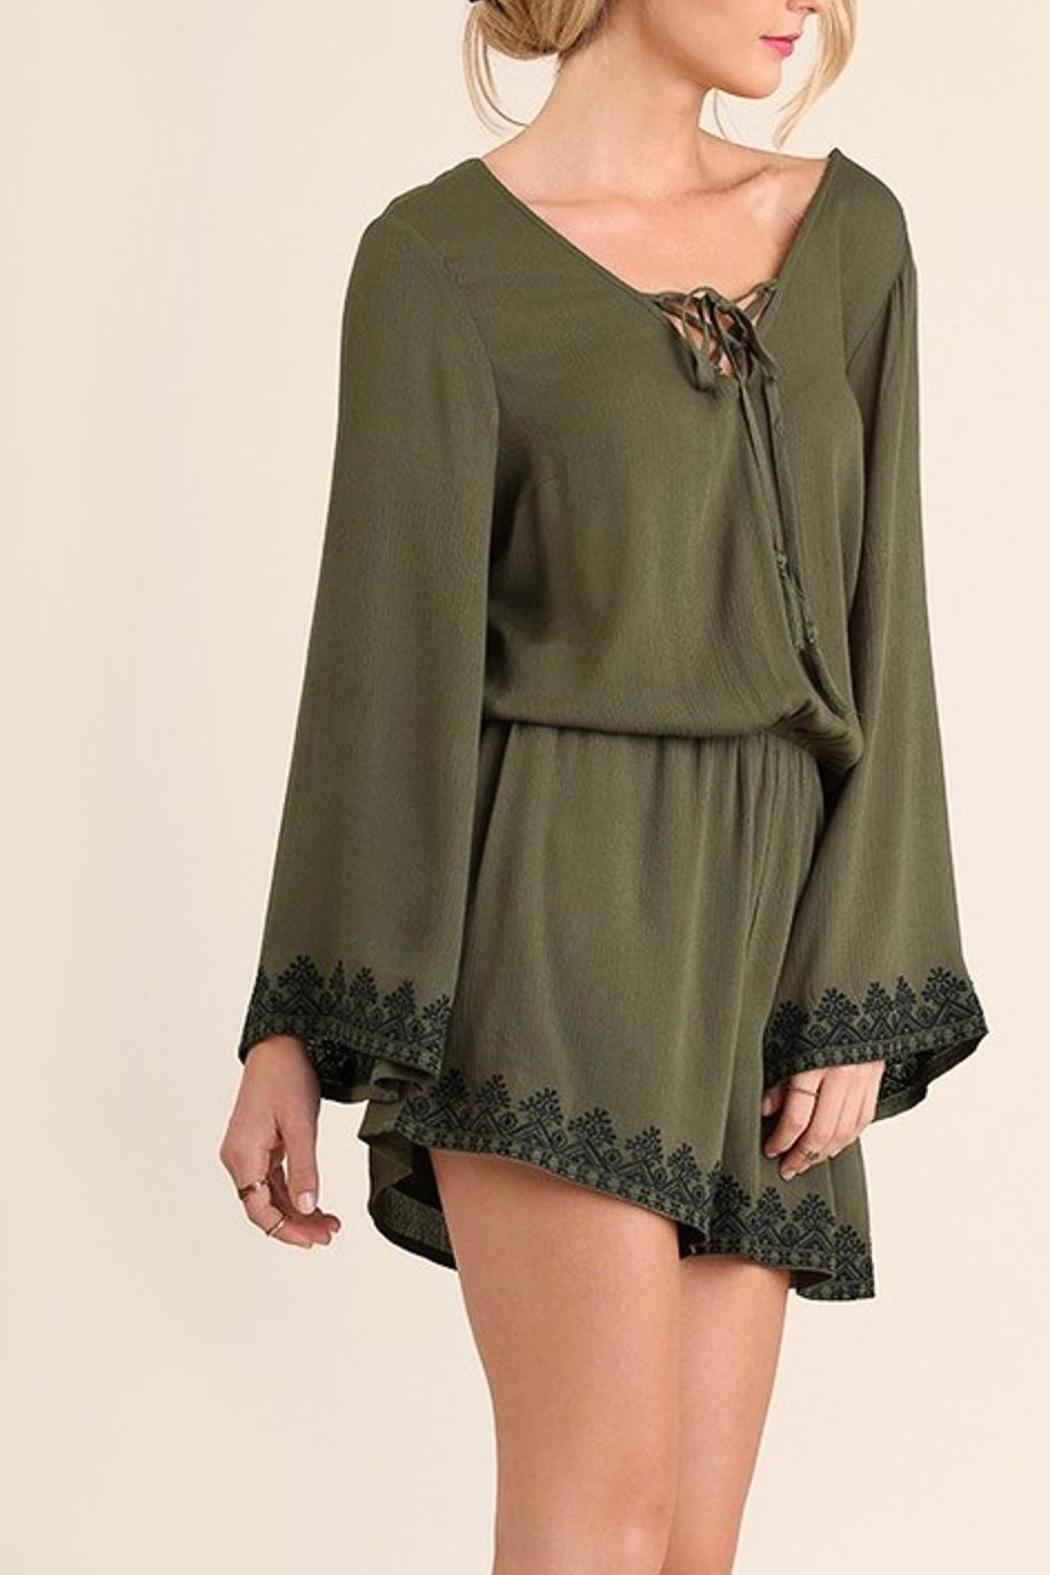 People Outfitter Pretty n Free Romper - Back Cropped Image